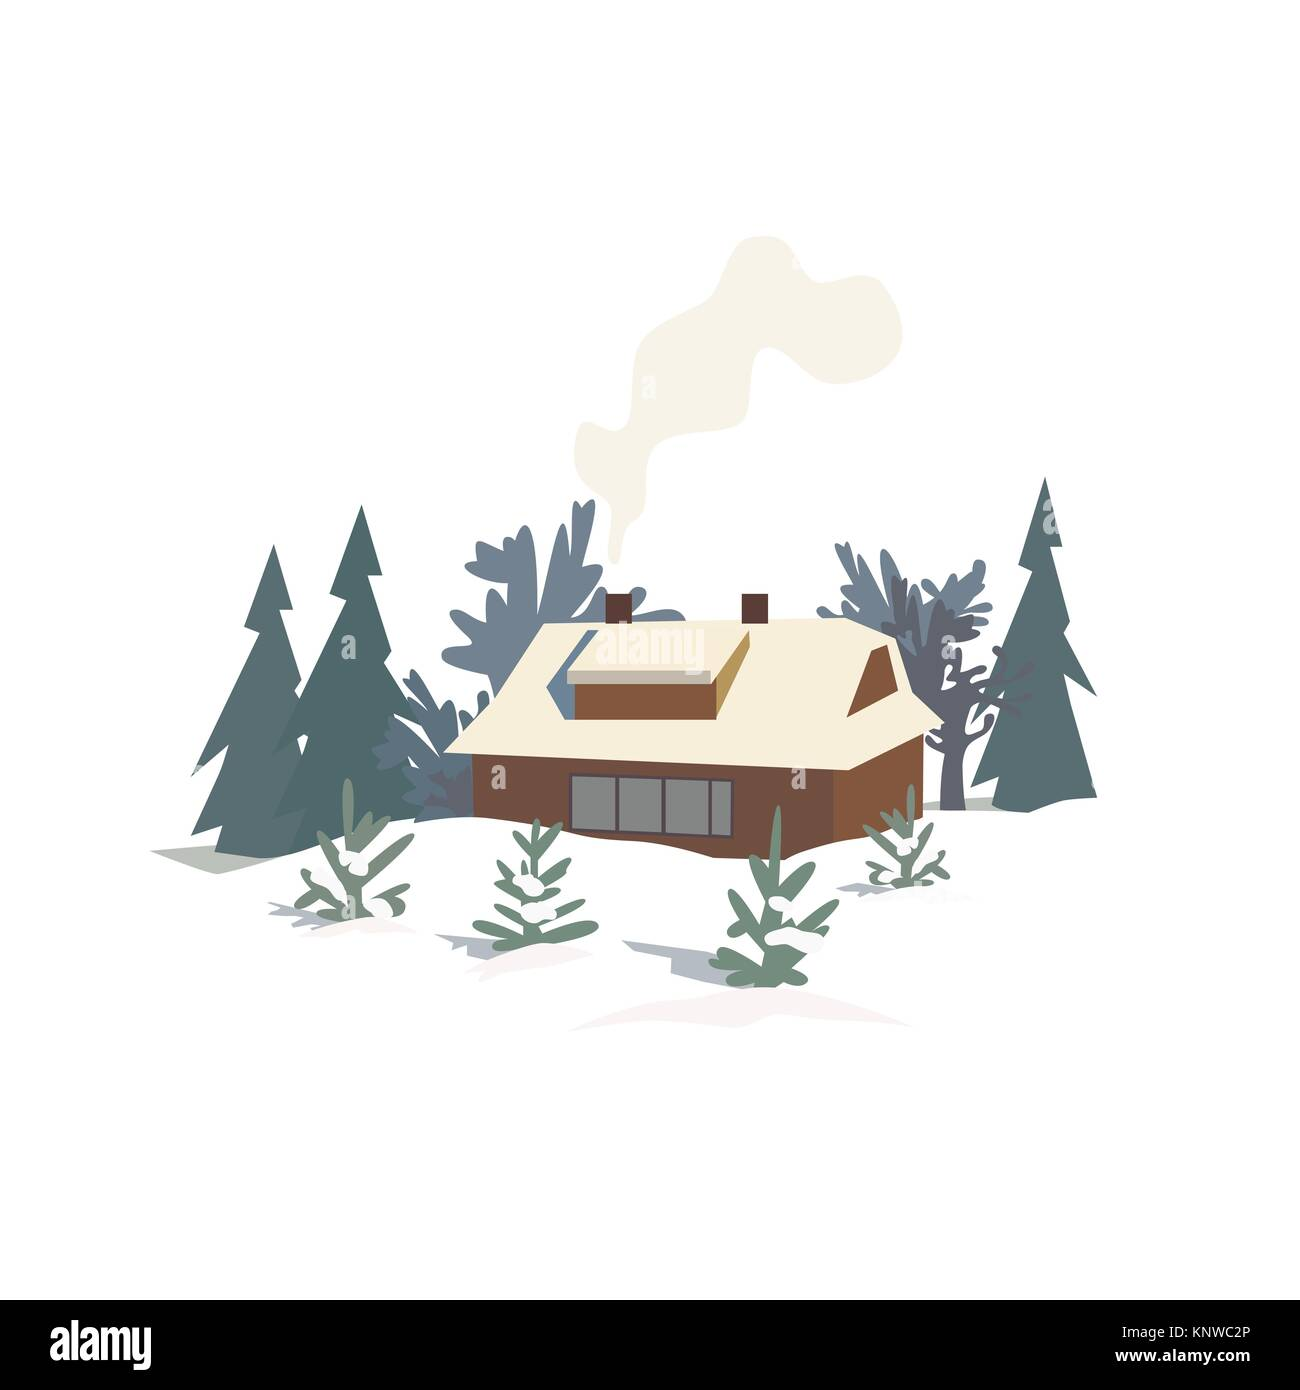 Rural house in snowy wood - Stock Image